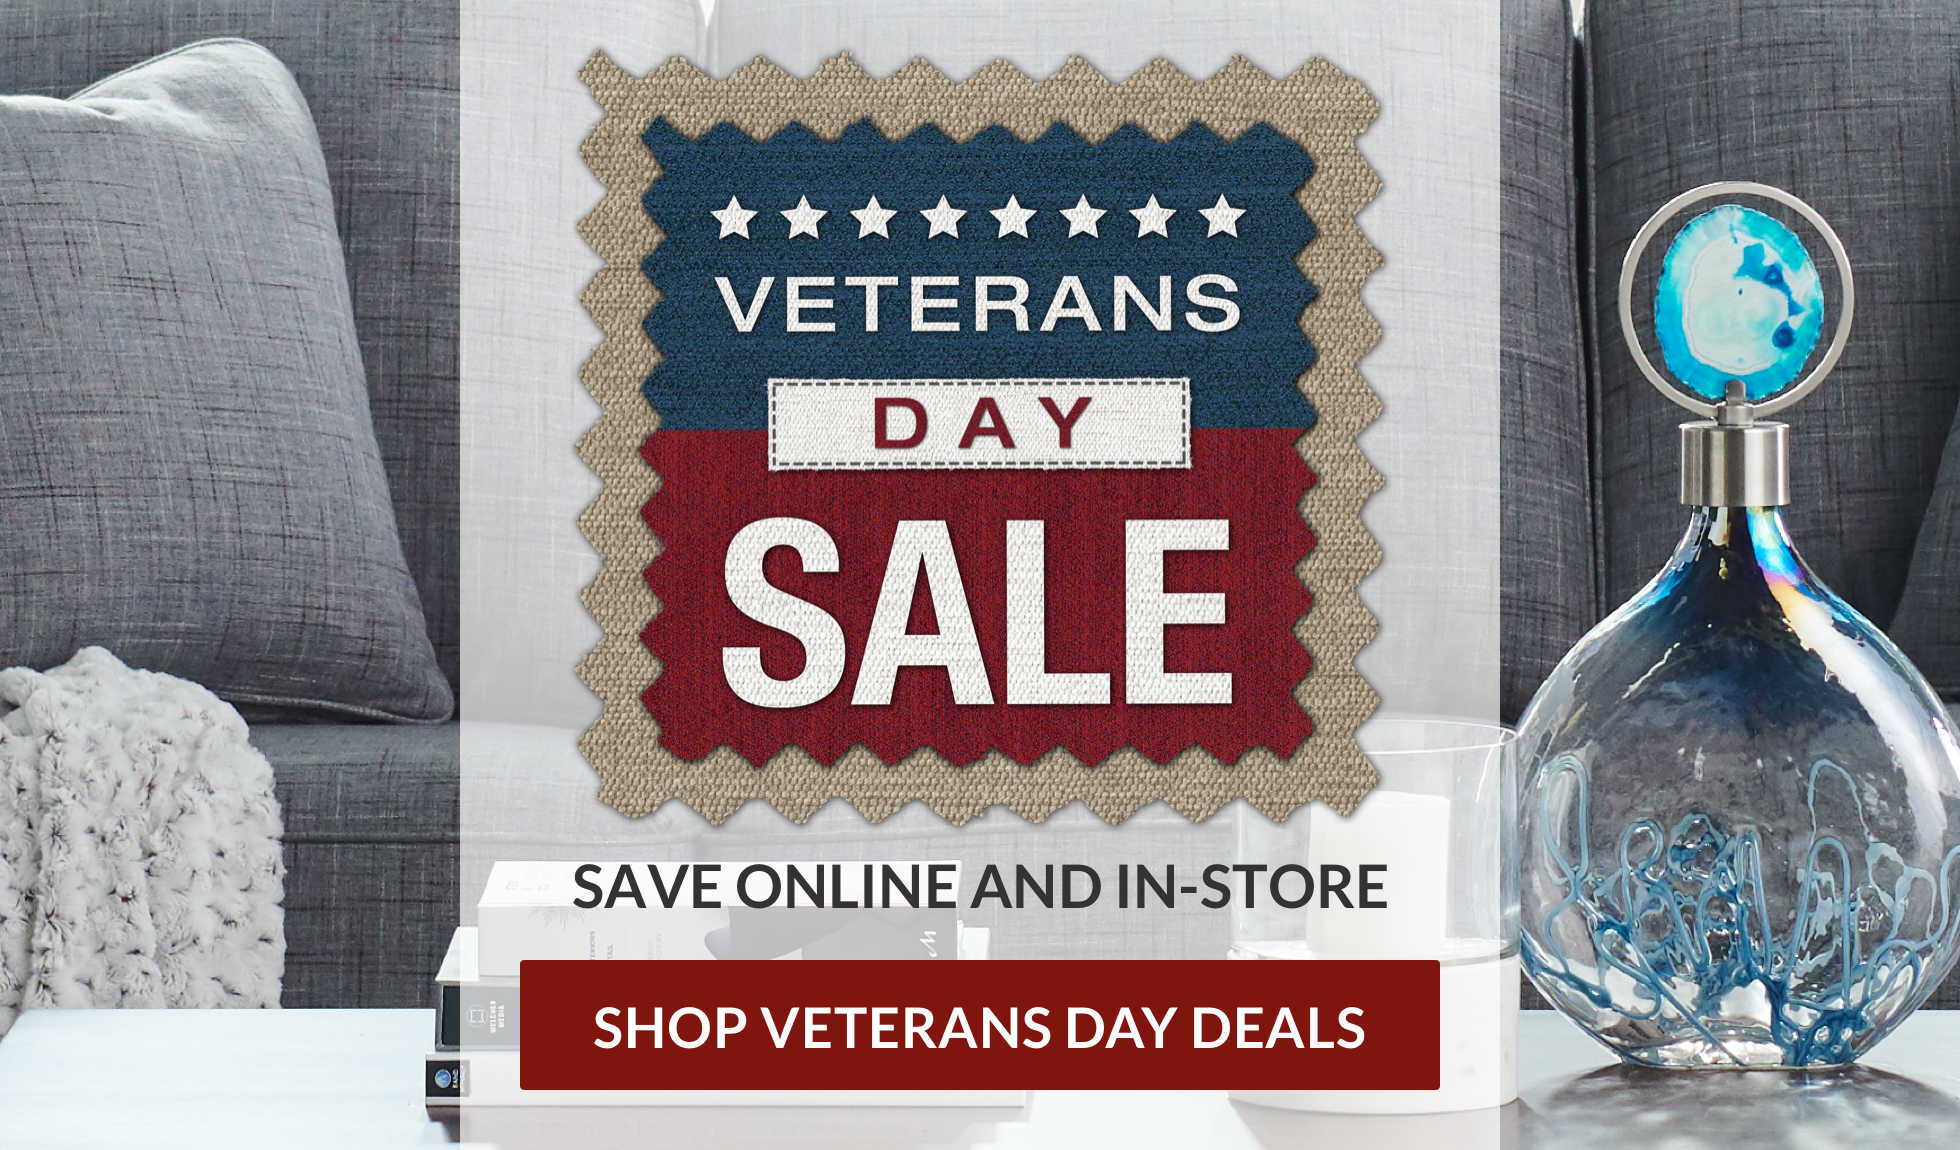 Save big in-store and online! Shop Veterans Day Deals.